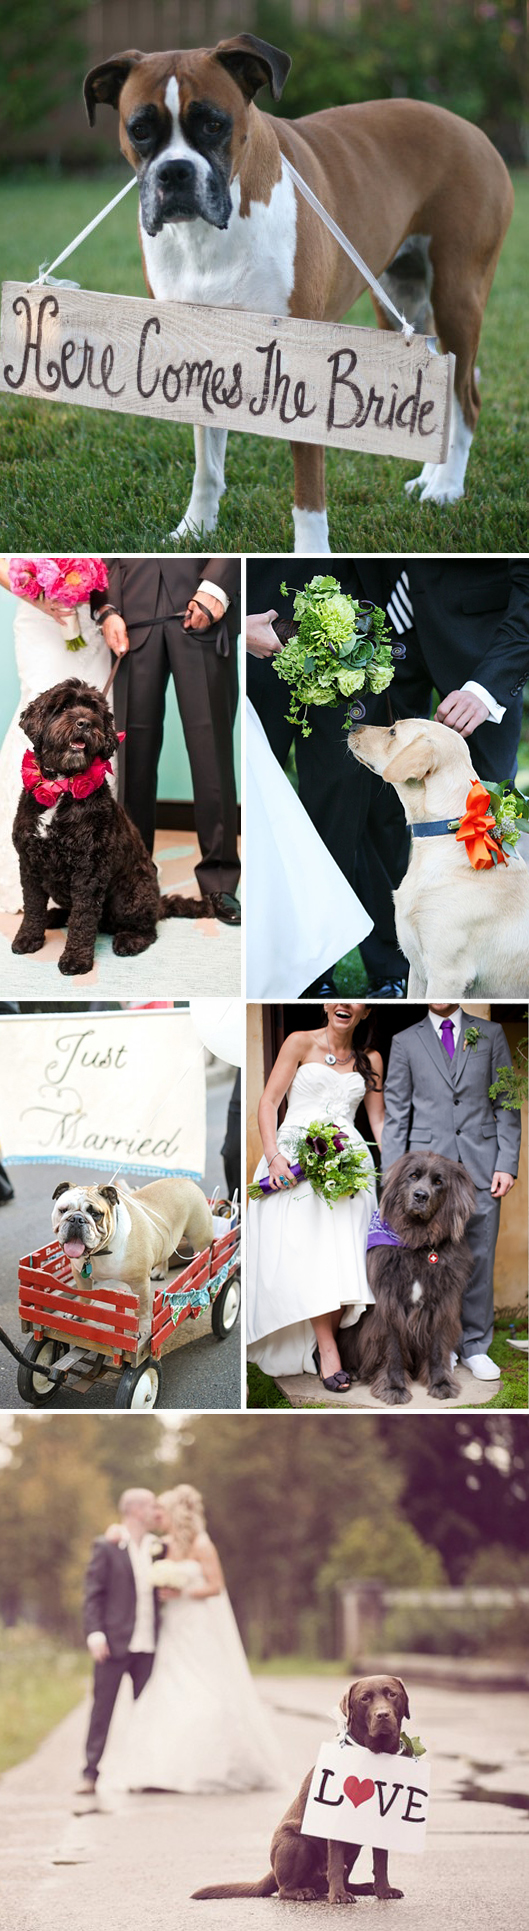 Dogs in Weddings 2